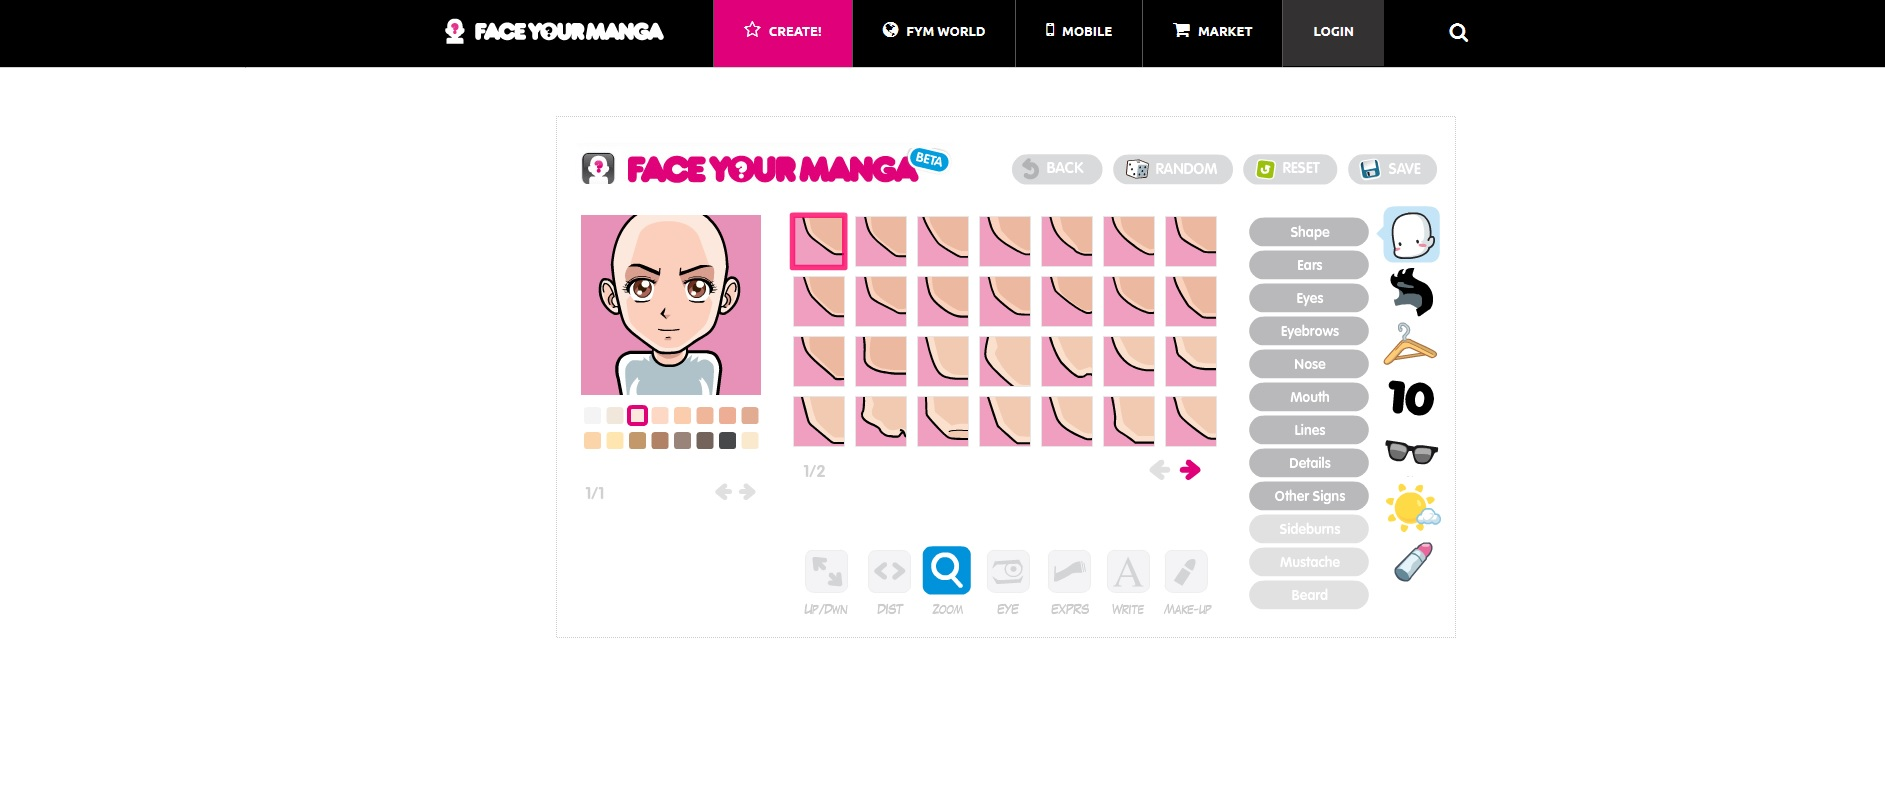 FACE YOUR MANGA